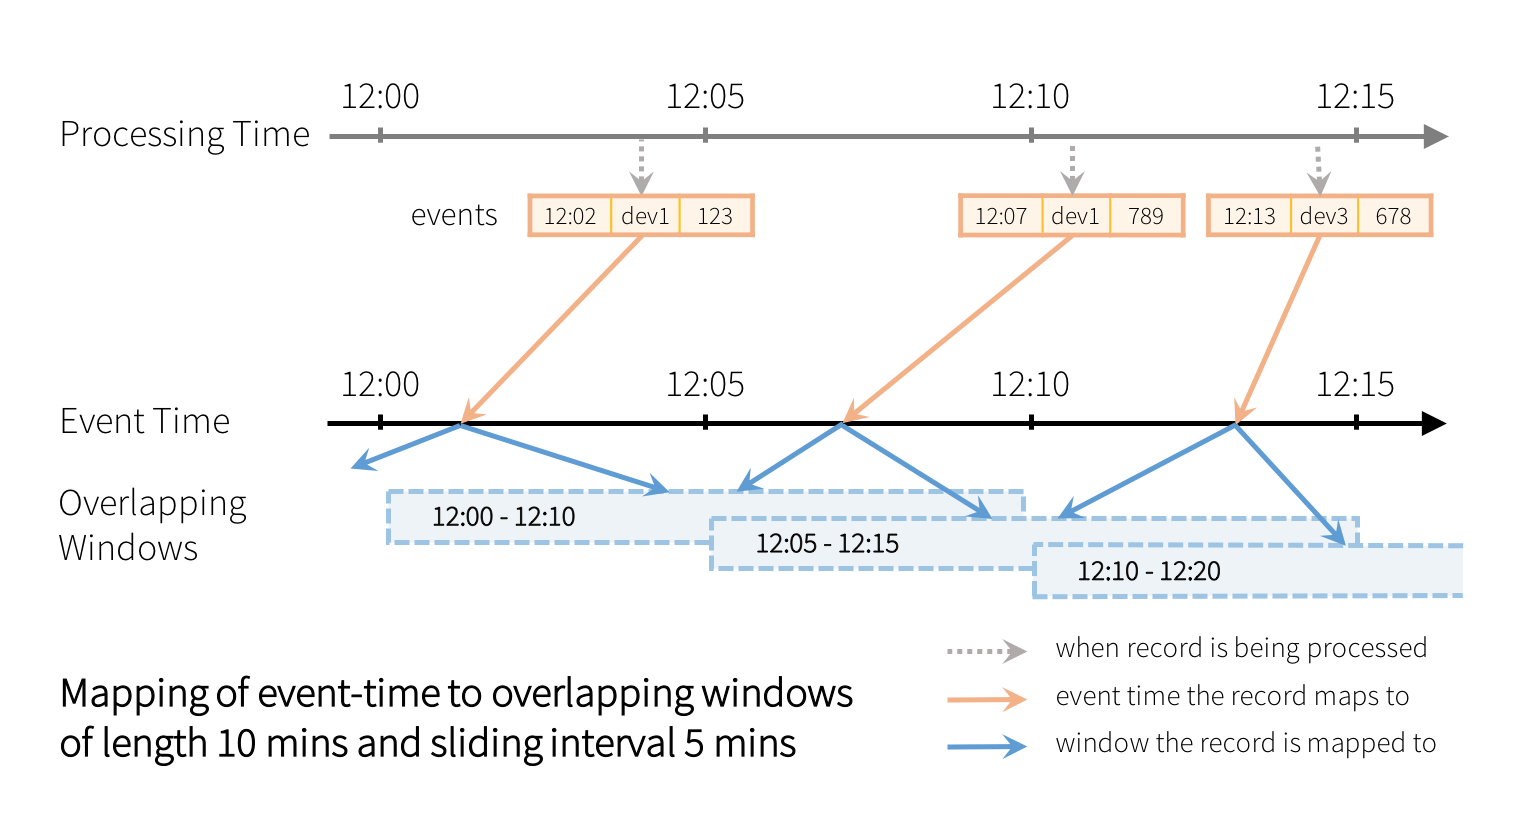 Mapping of event-time to overlapping windows of length 10 mins and sliding interval 5 mins